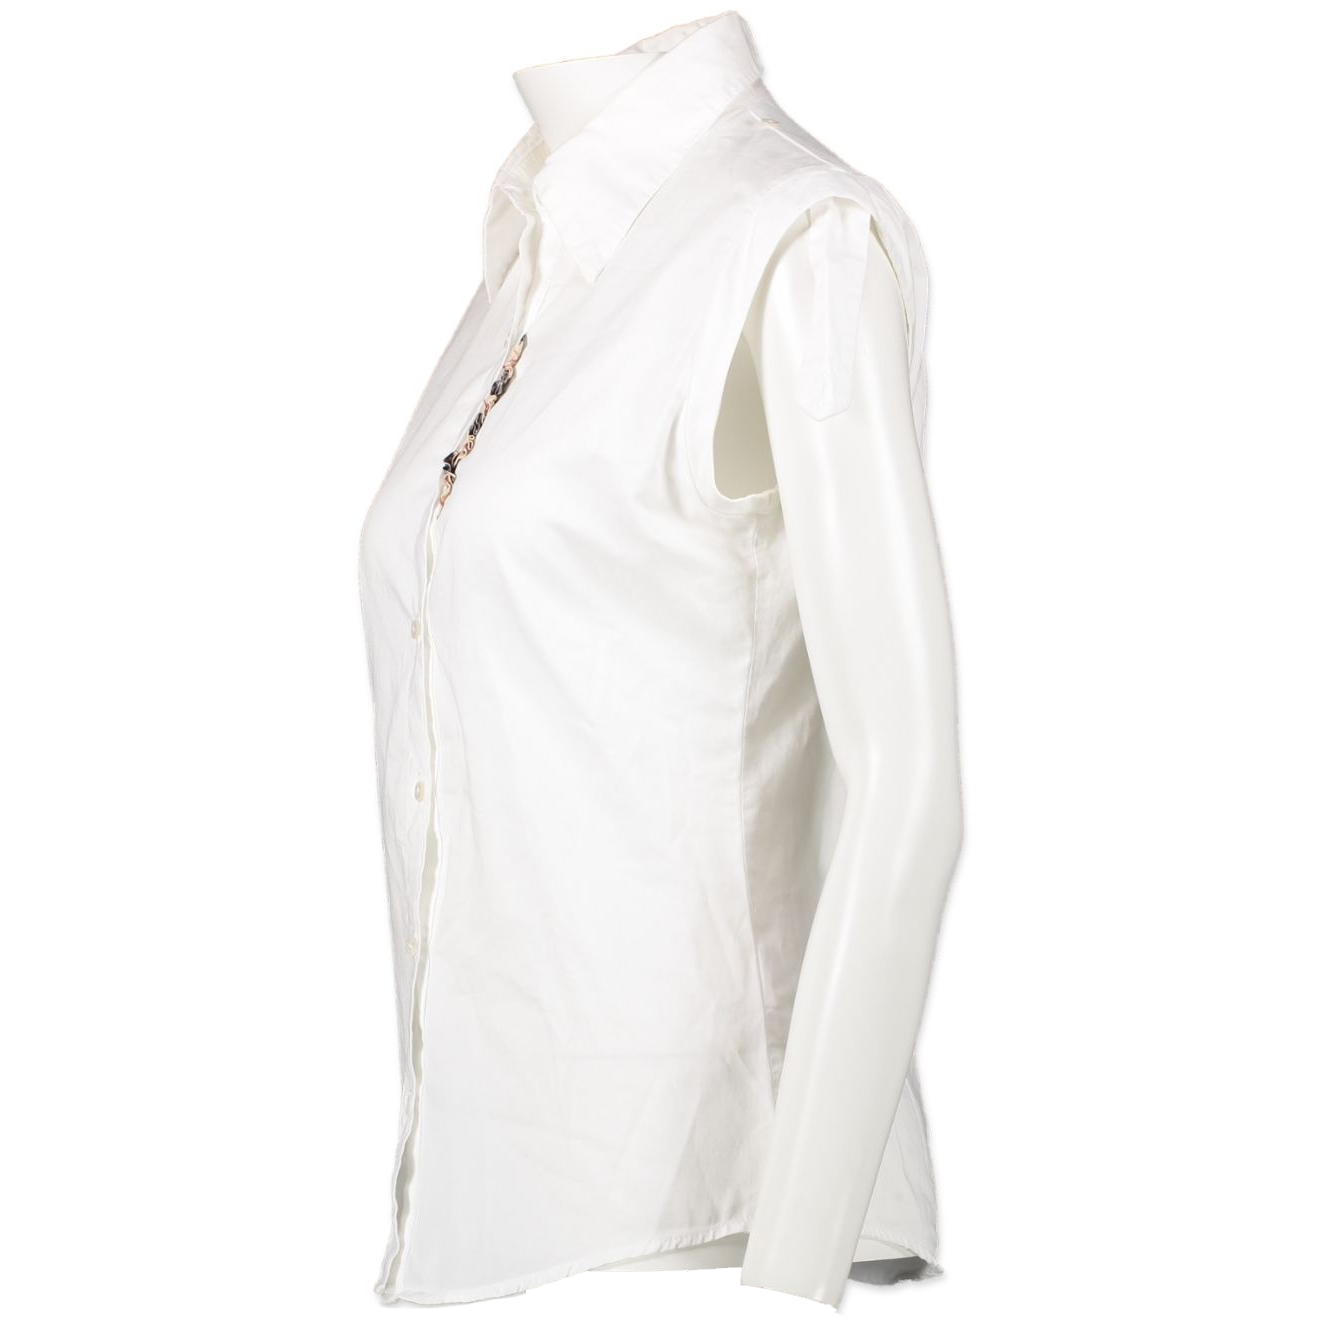 Burberry White Blouse - Size 14+